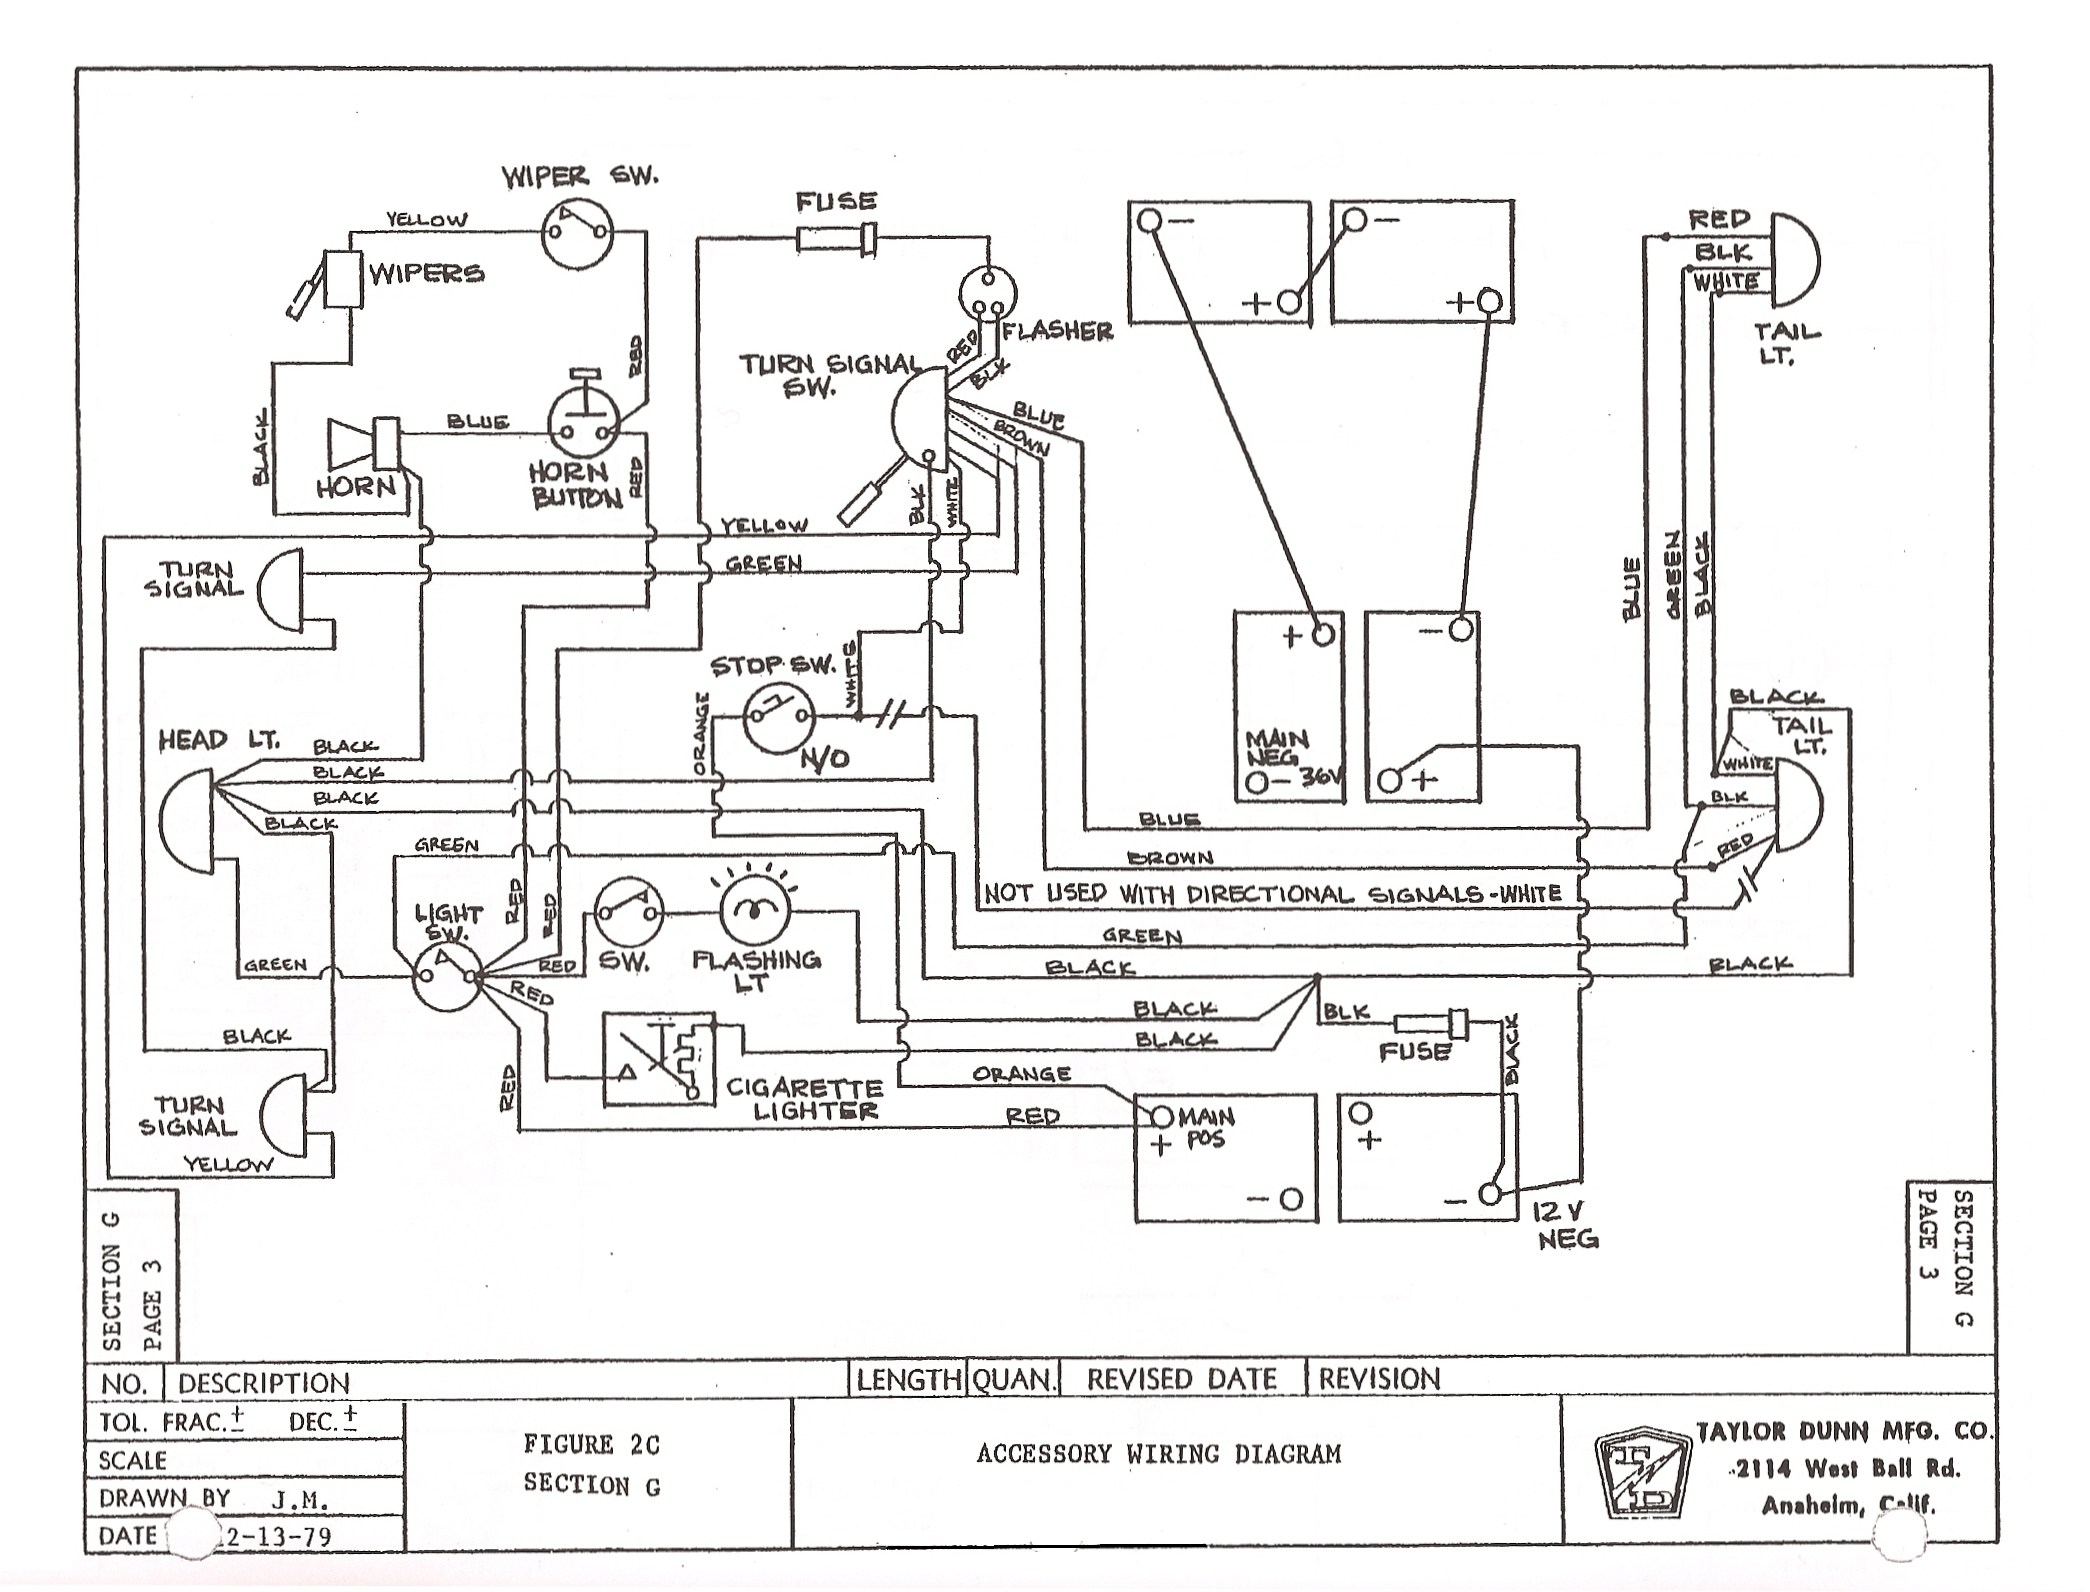 TD_GT370_71_81to85_003 taylor dunn b2 48 wiring diagram taylor dunn b210 manual \u2022 wiring Cushman Golfster Exploded Diagram at soozxer.org